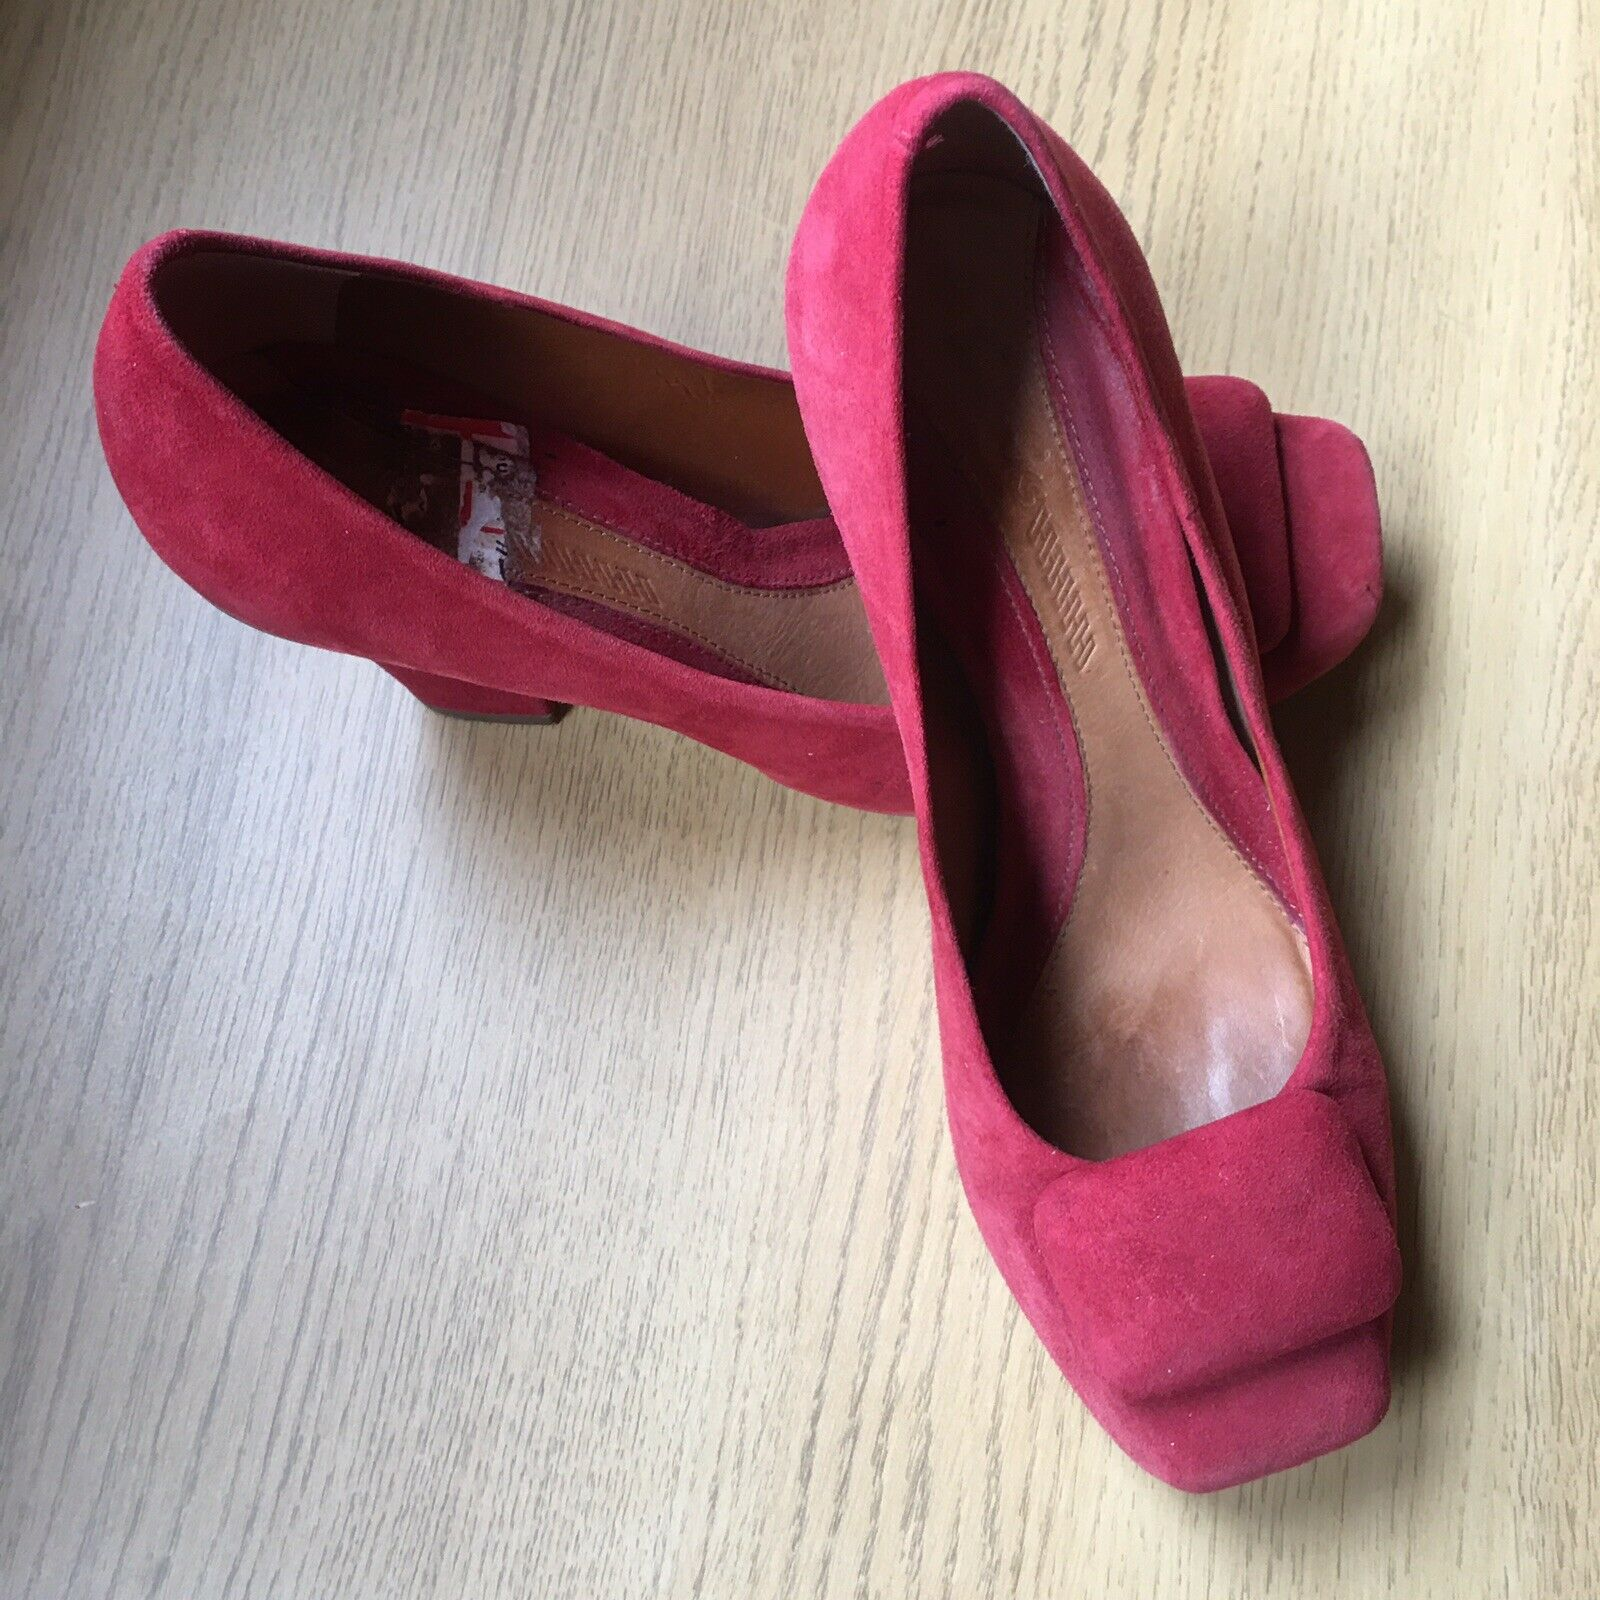 """CLARKS UK 5.5 Orangey Red Suede Court Shoes Square Toes 3"""" Heels"""